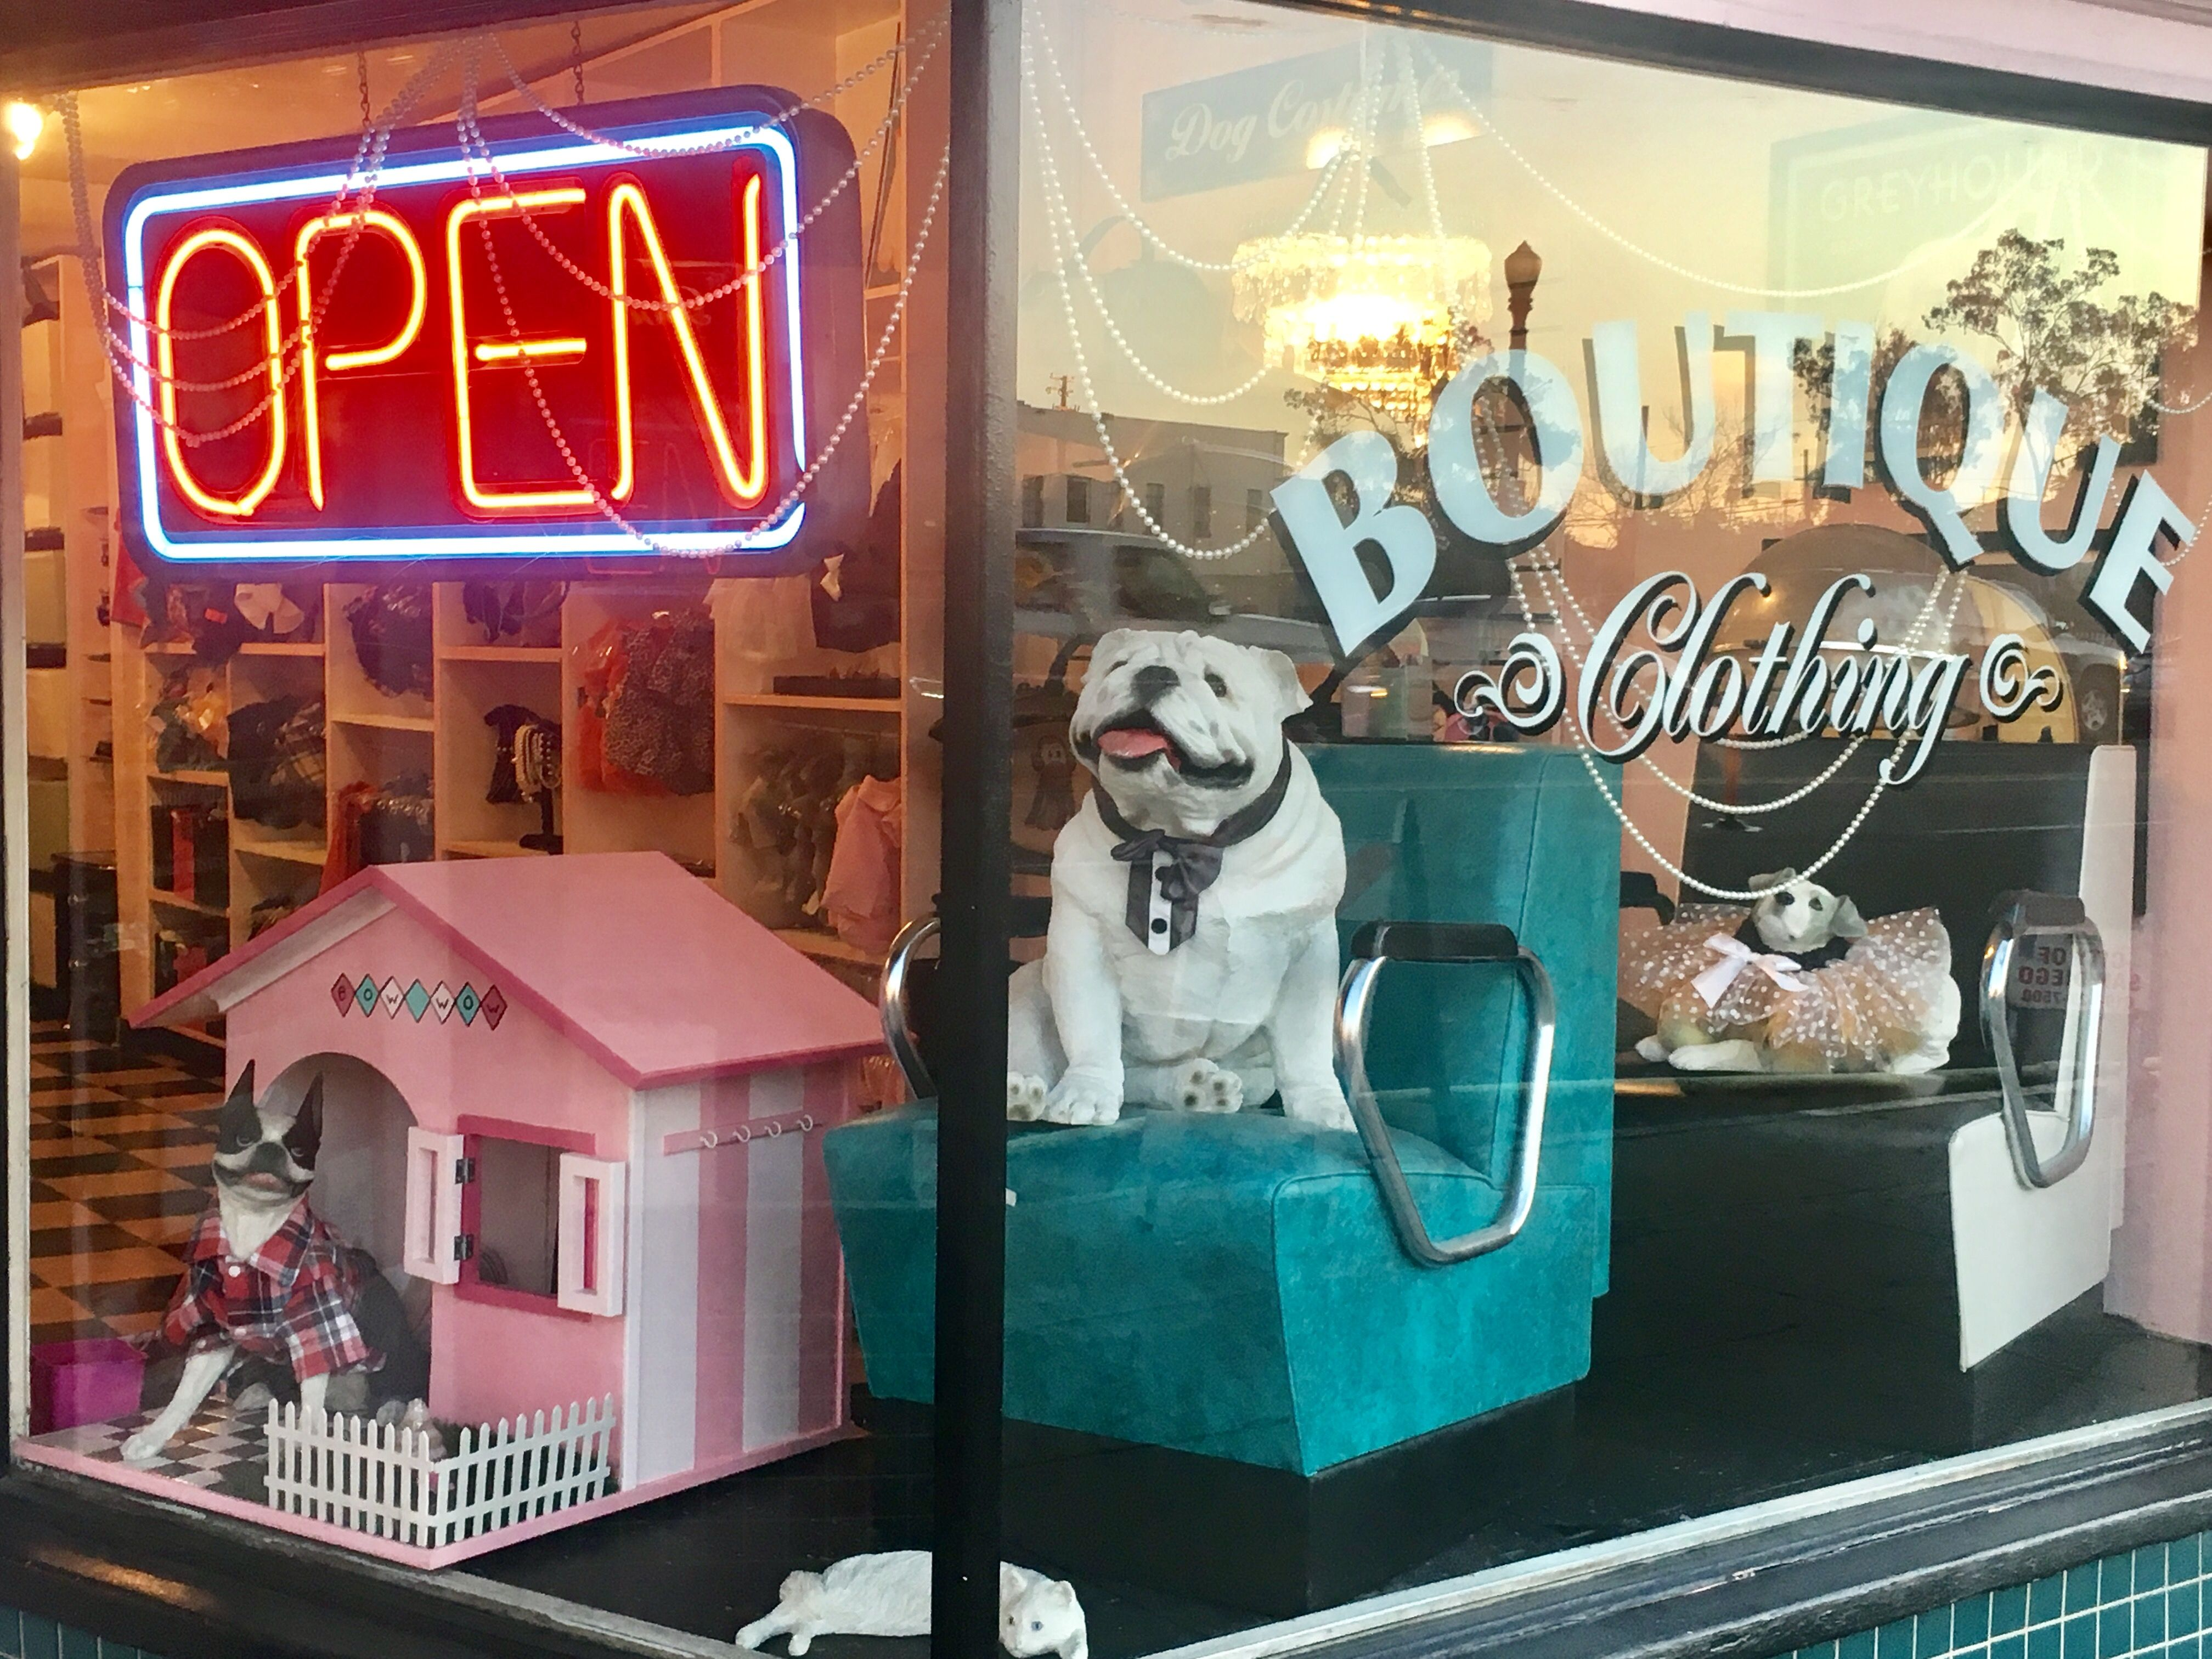 Our Crazy Retro Window Yes Working Drying Chairs Petboutique Petgroomingsalon Pet Boutique Dog Grooming Salons Dog Boutique